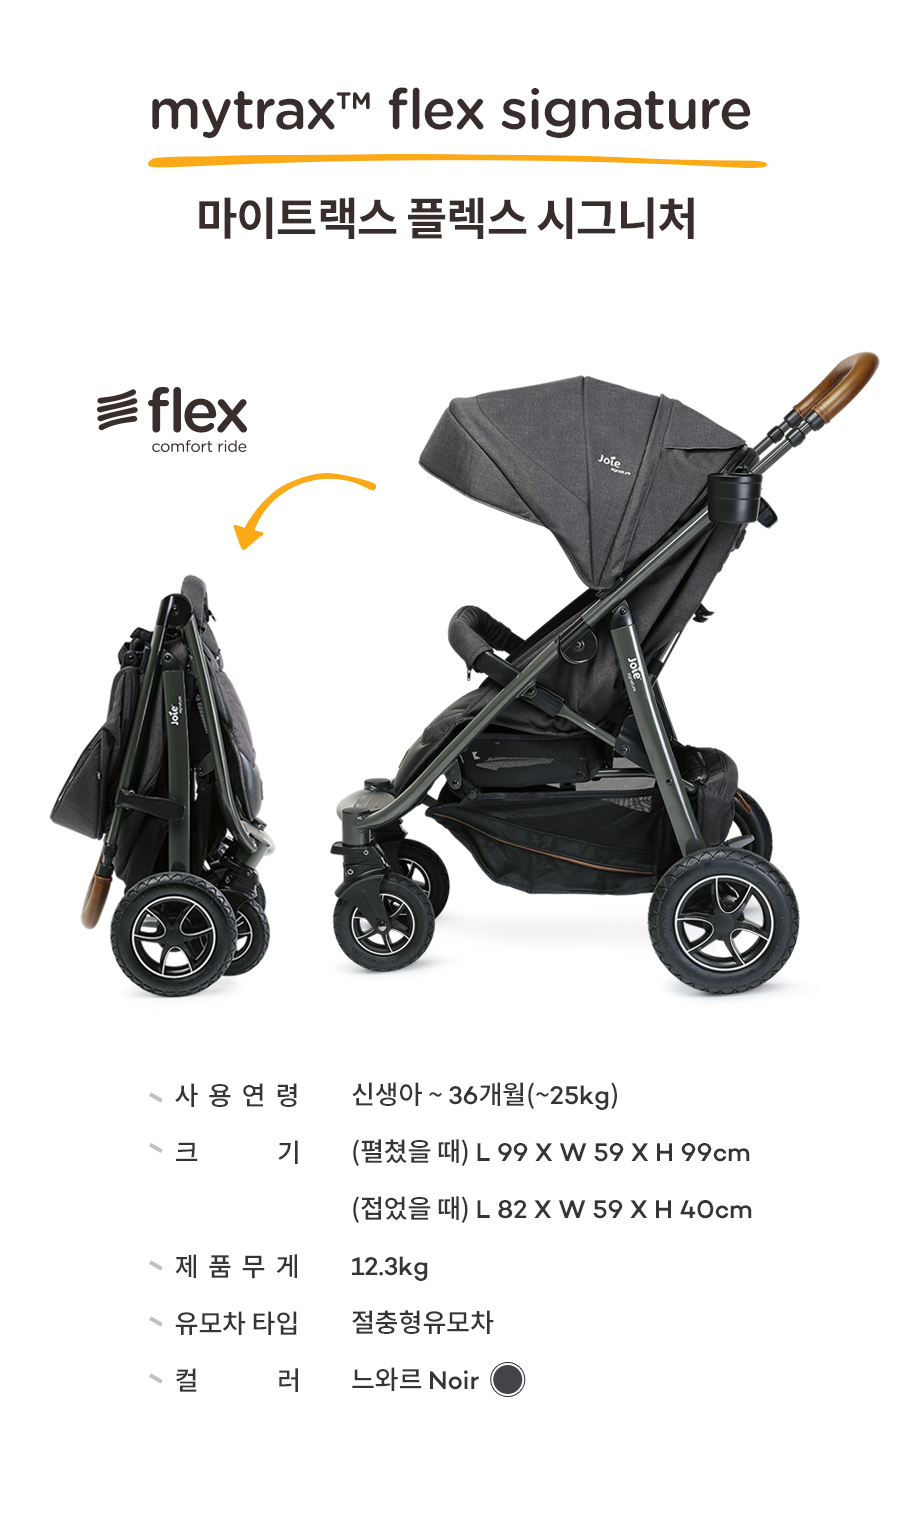 joie signature mytrax flex